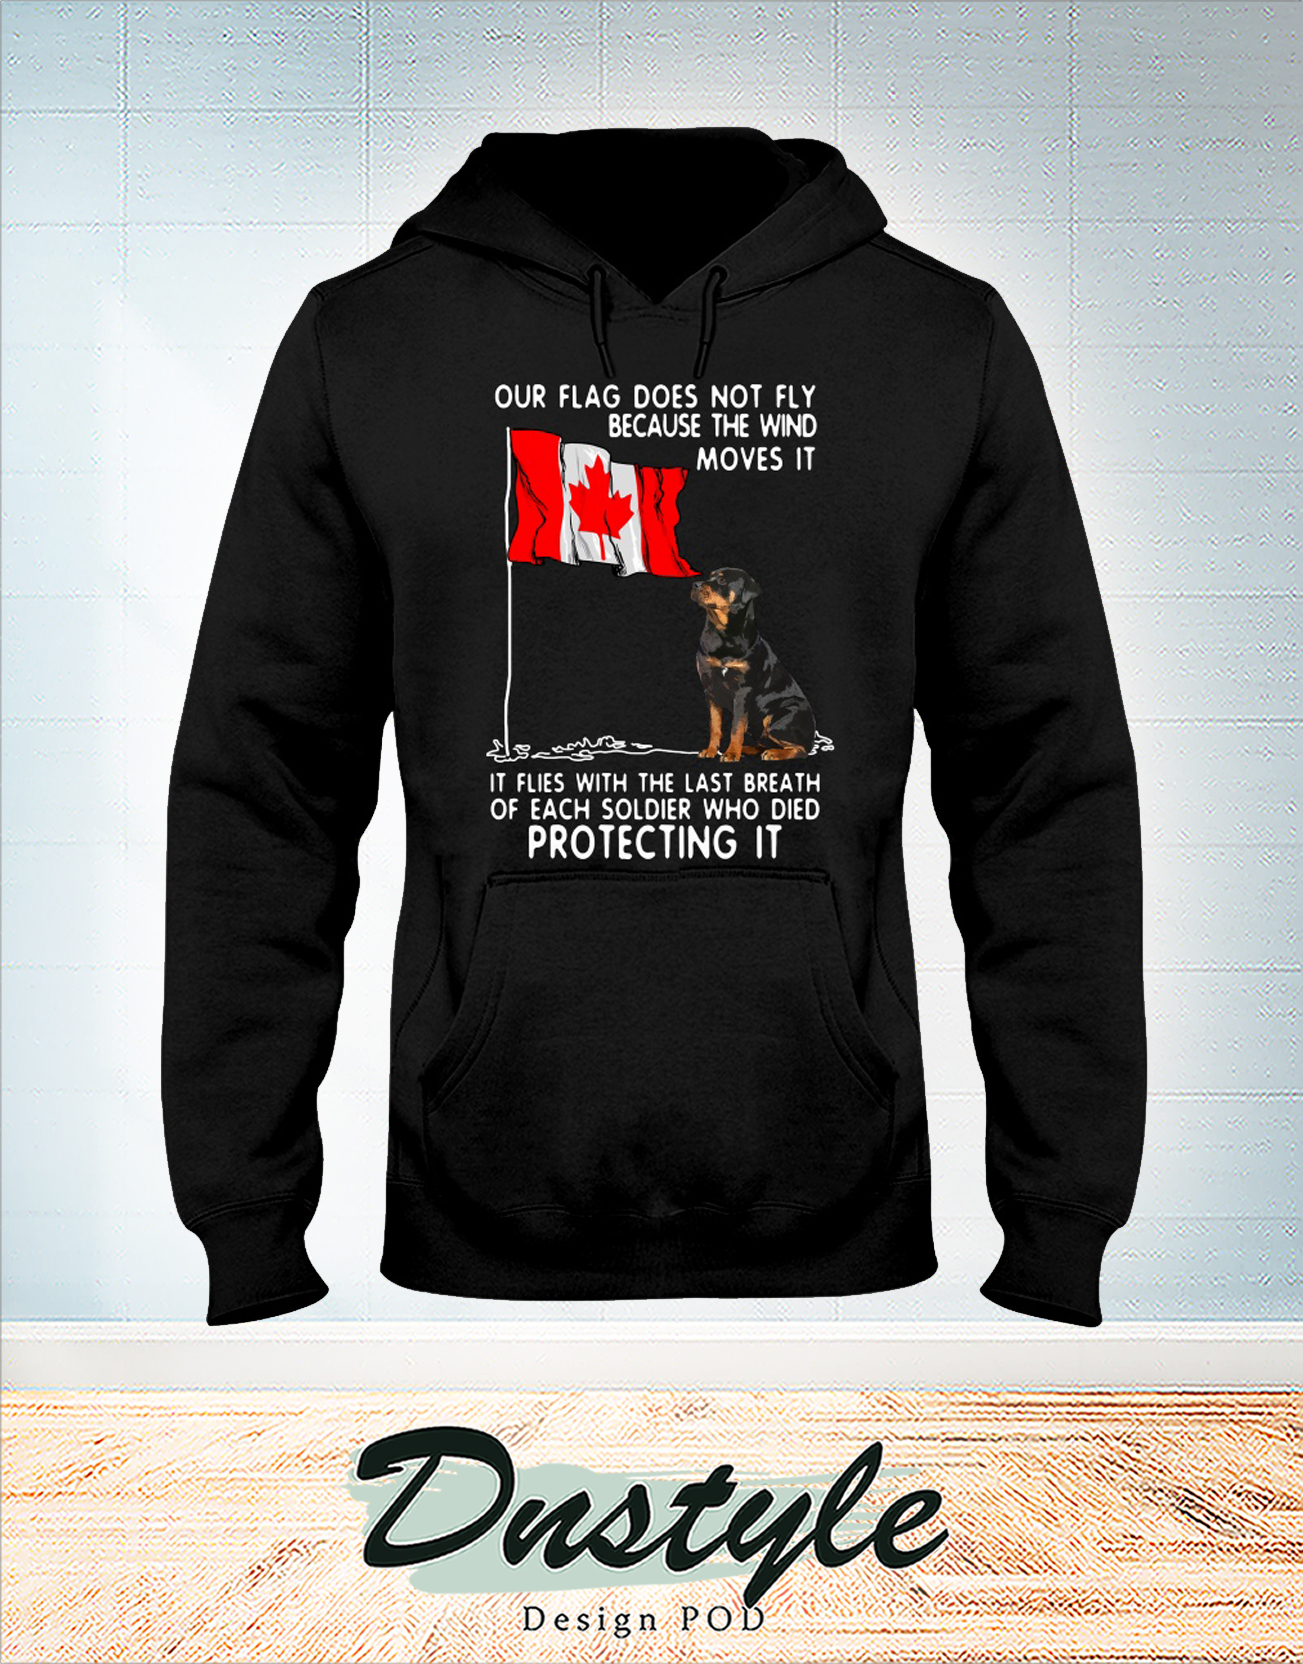 Rottweiler canada soldier our flag does not fly because the wind moves it hoodie